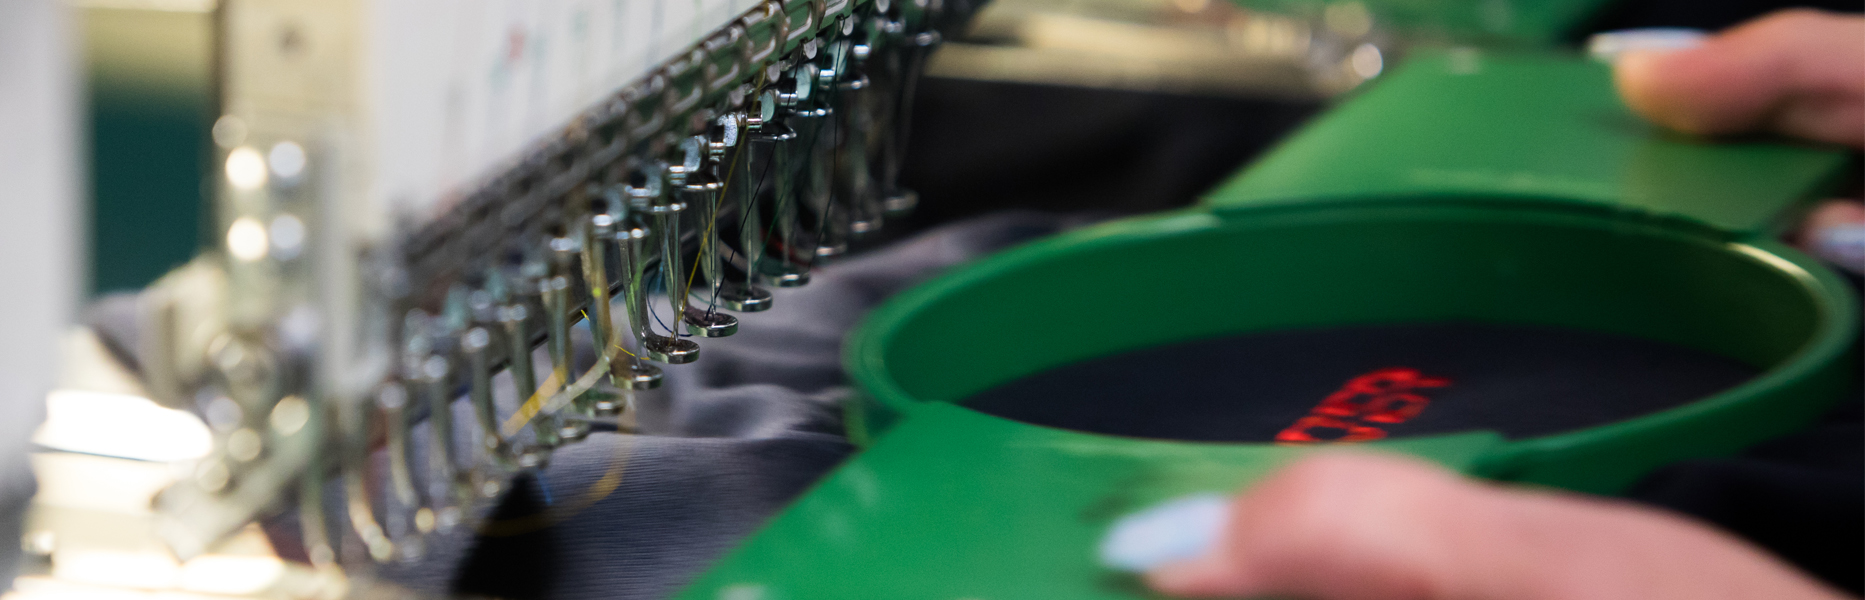 Bespoke Uniform Manufacturing Services